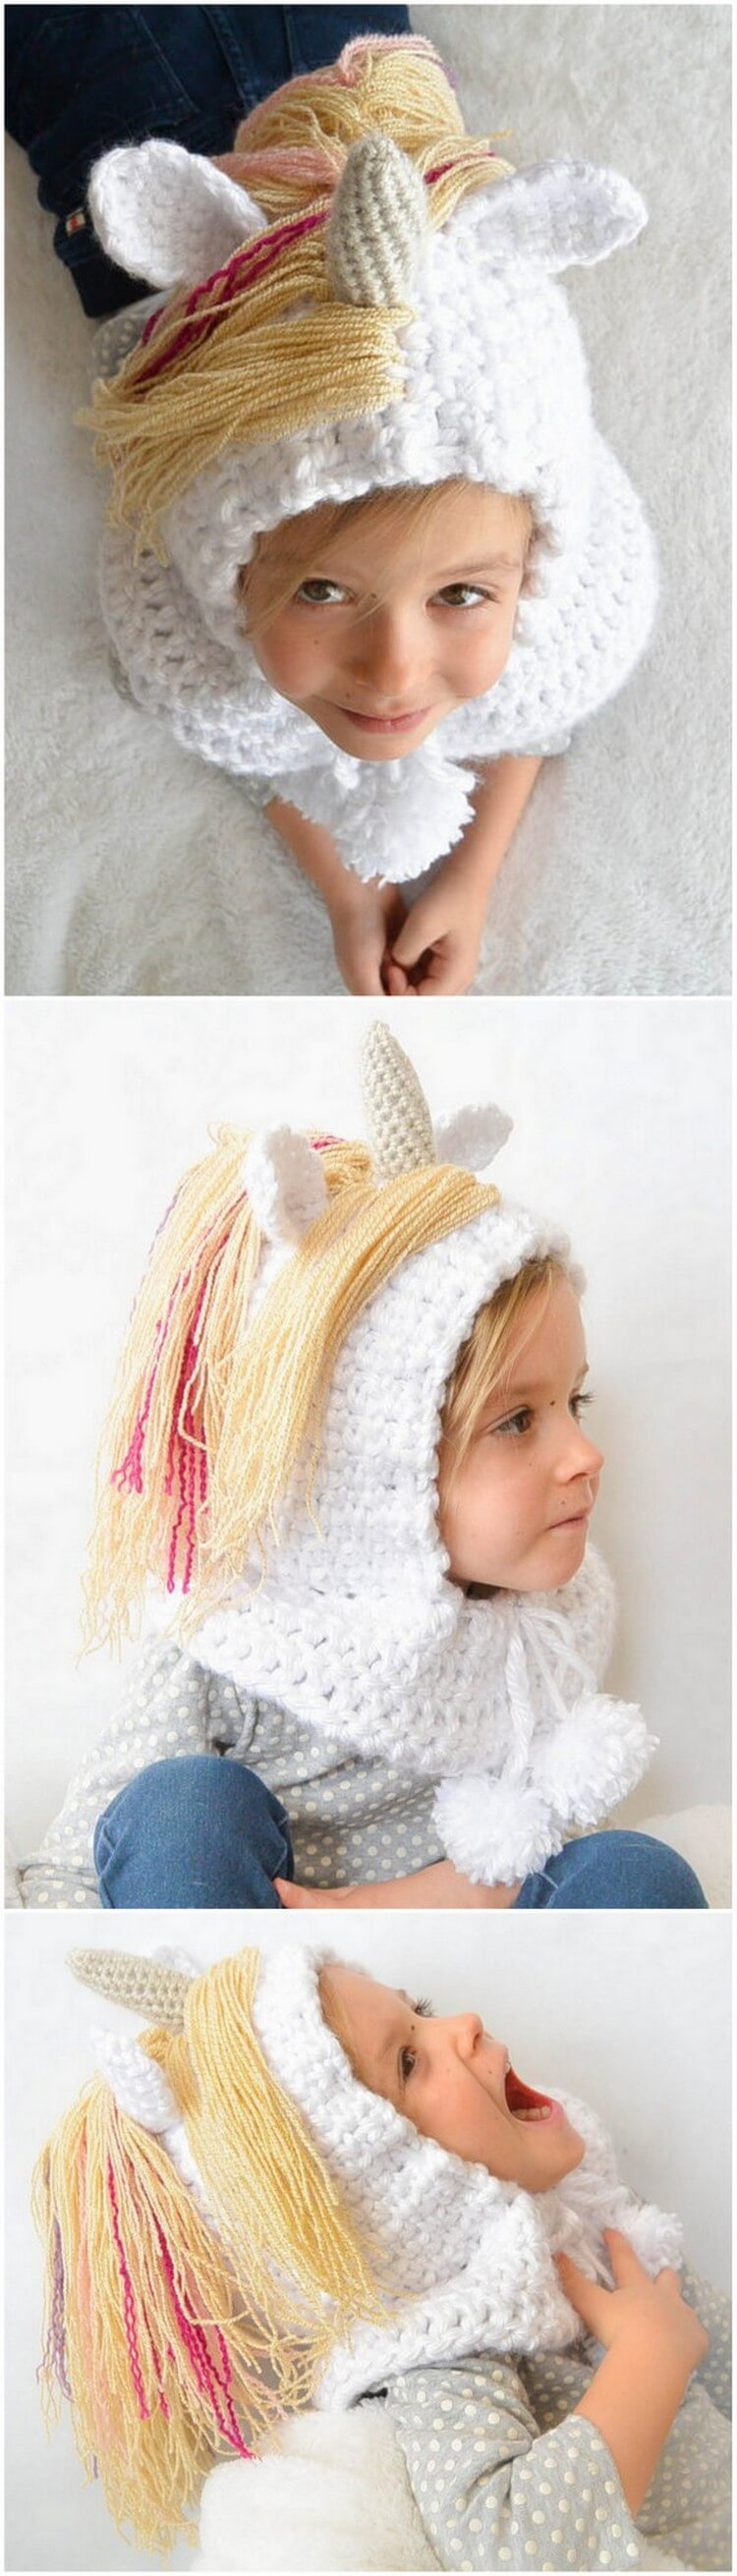 Crochet Unicorn Pattern (9)